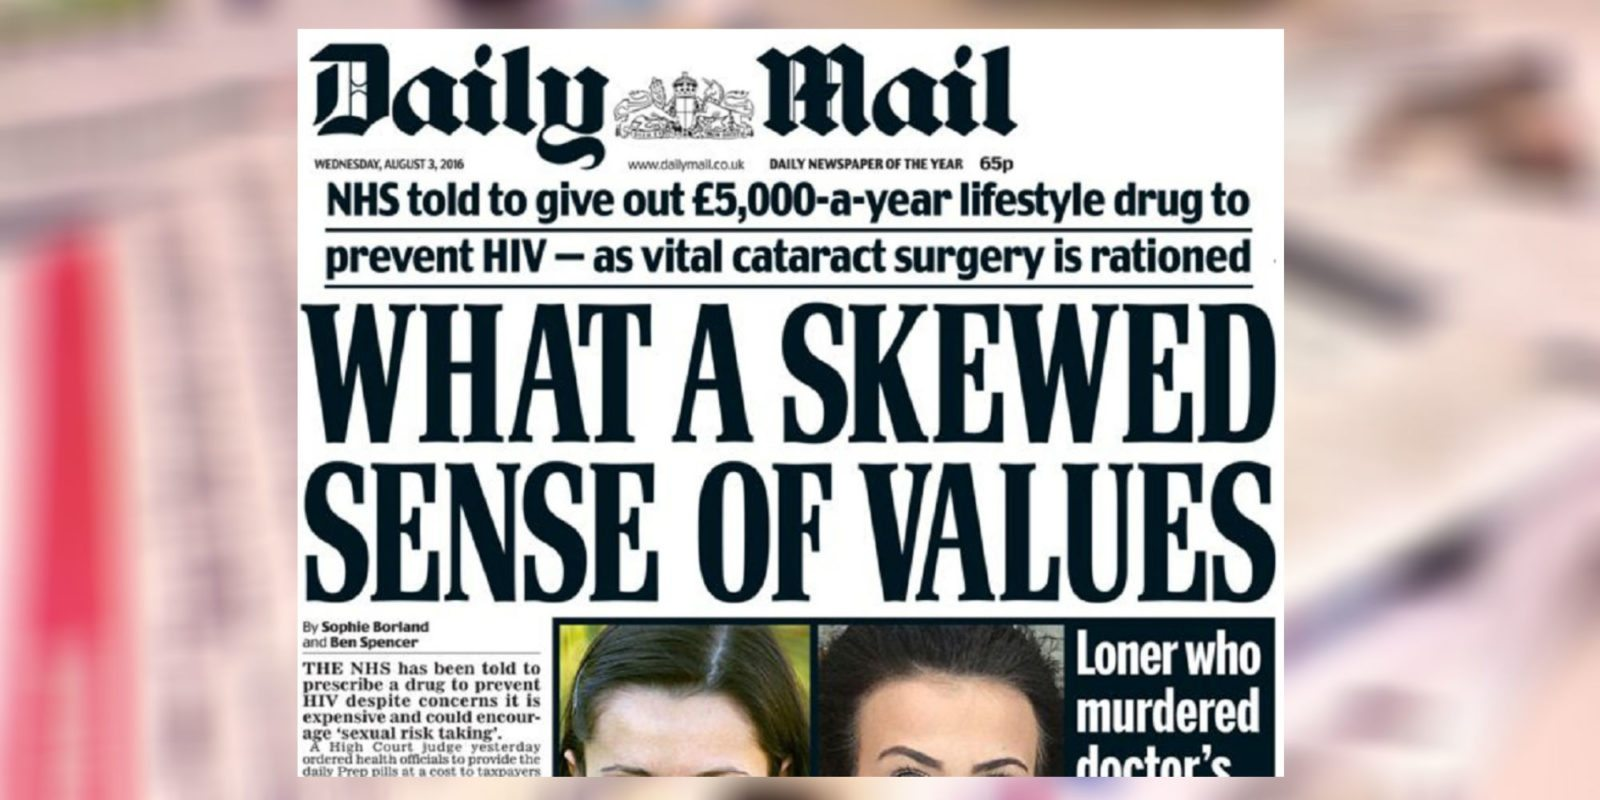 The Daily Mail ran a front-page story attacking PrEP